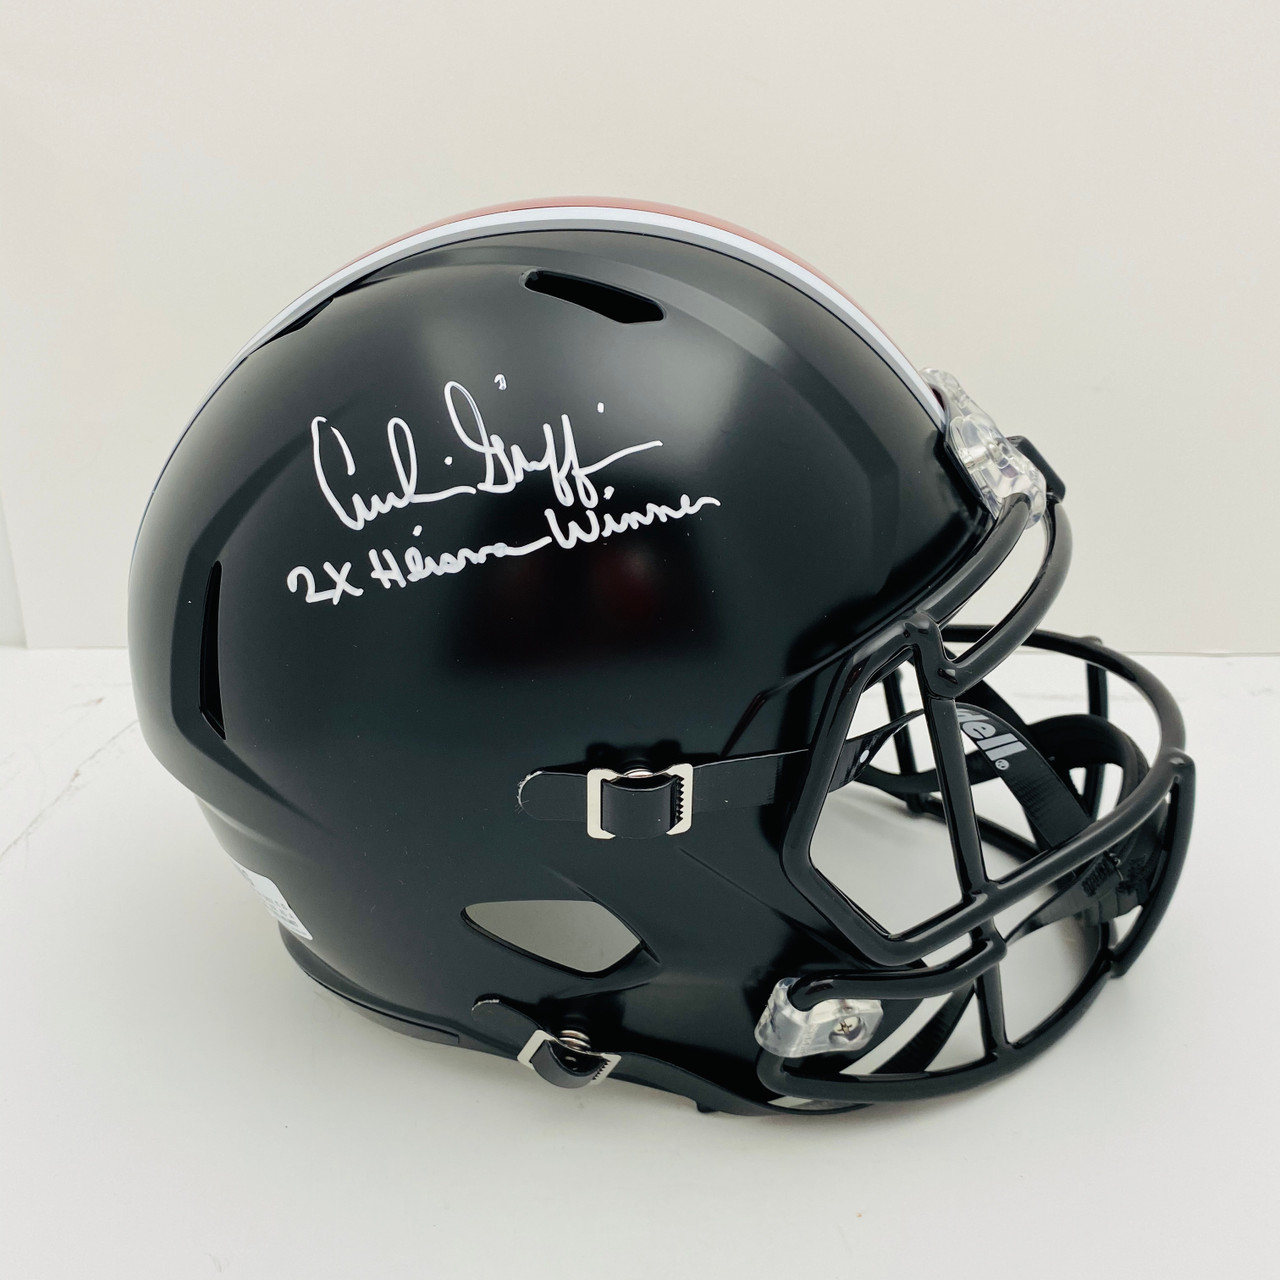 Archie Griffin Ohio State Buckeyes 'Only 2x Heisman' Autographed Black Replica Helmet - Certified Authentic